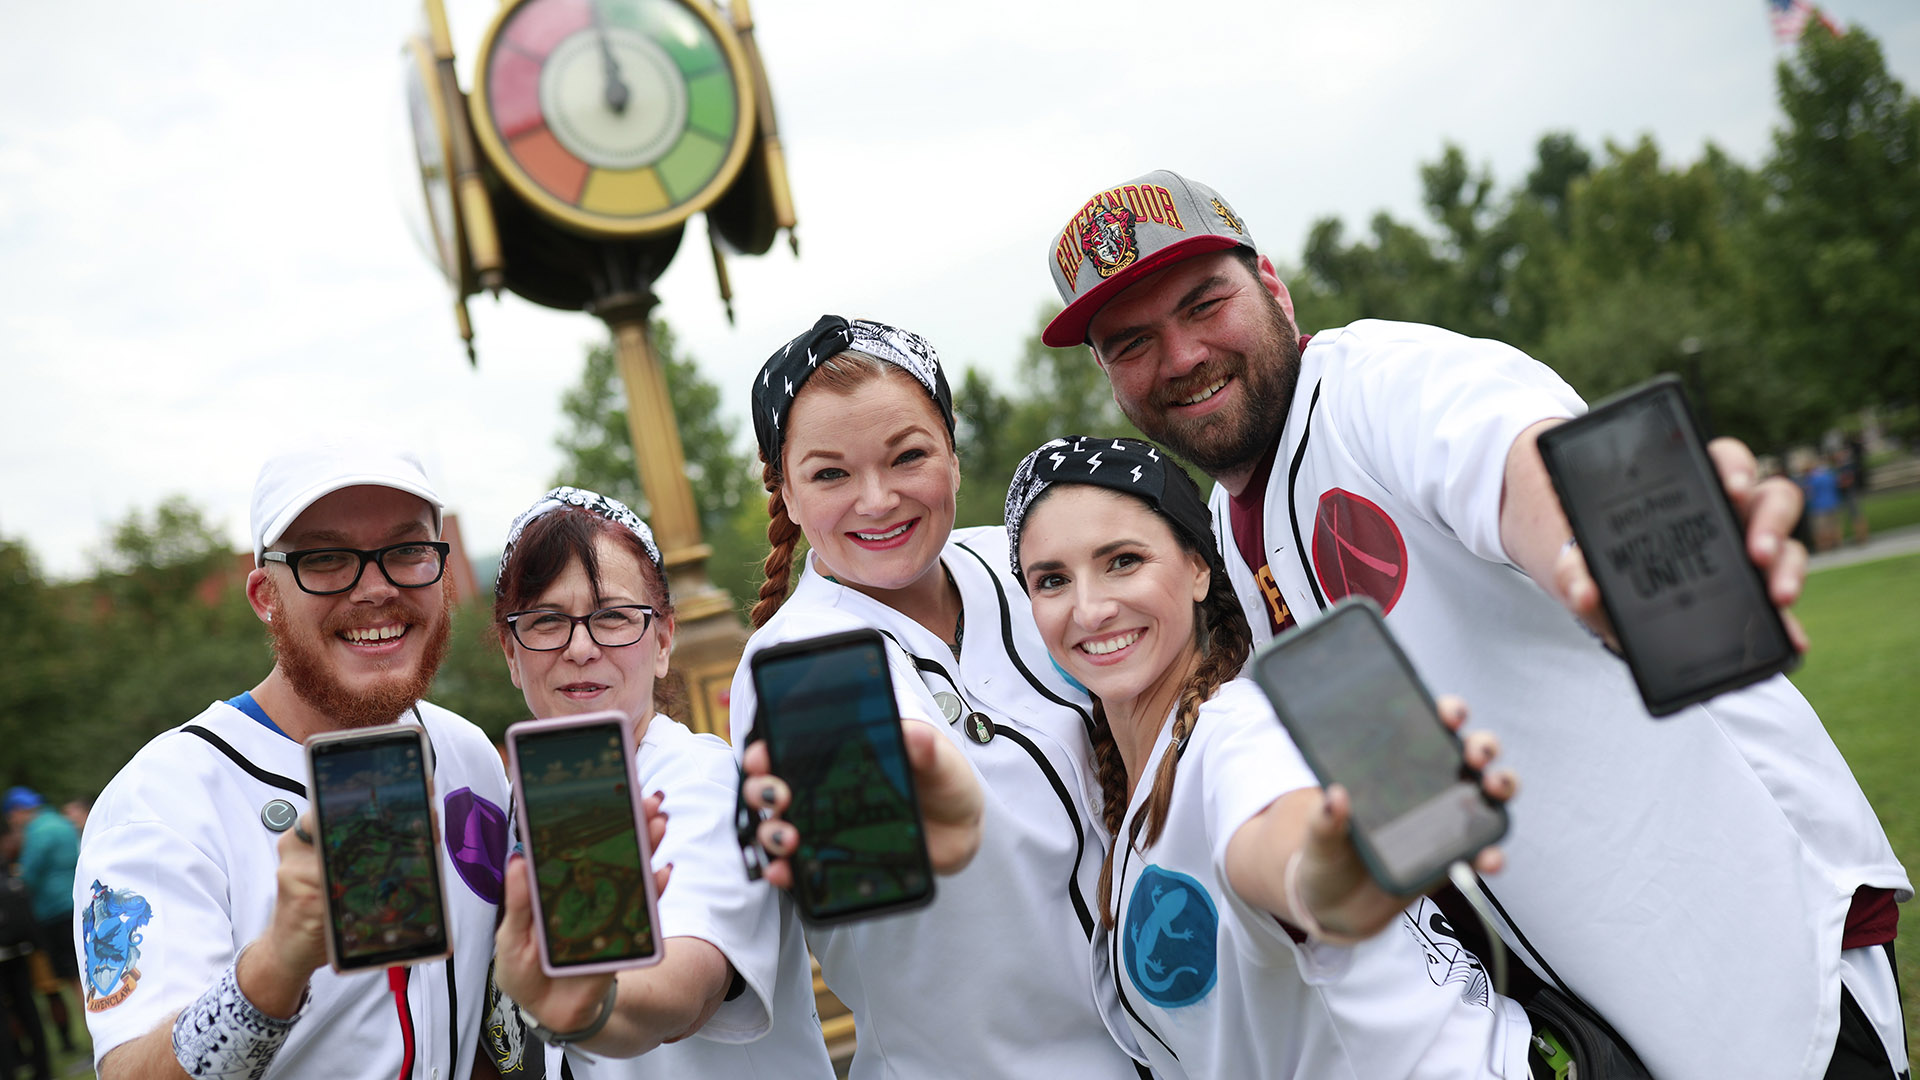 Gamers show off their phones as they hunt for Foundables in White River State Park.